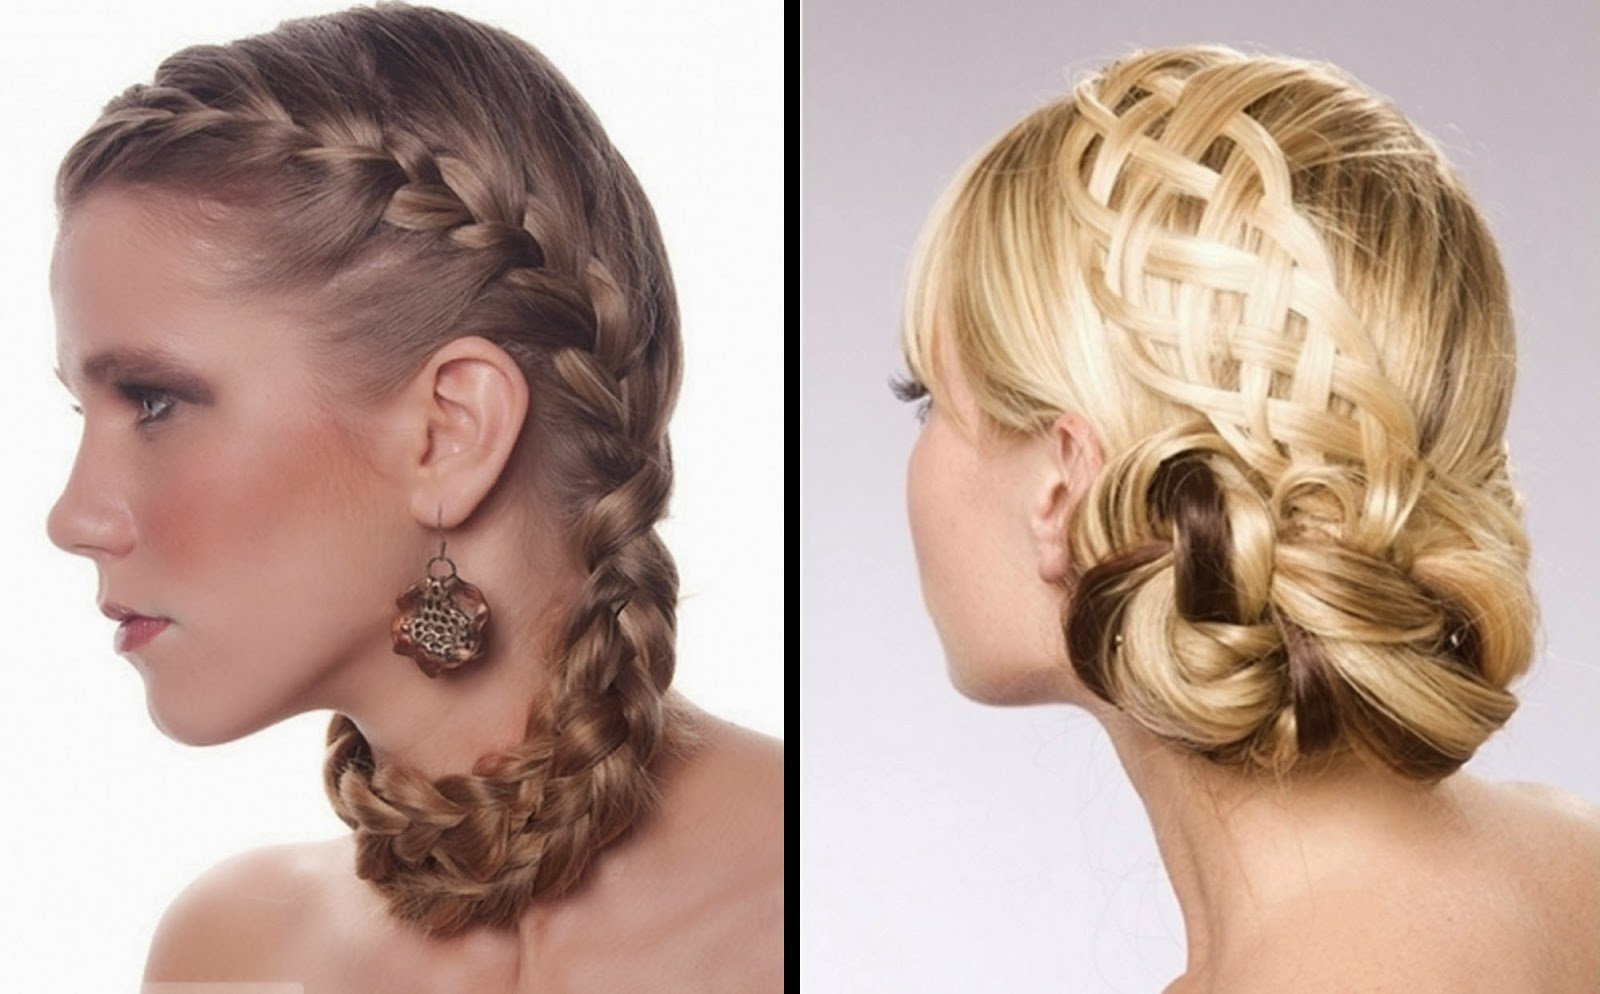 Best ideas about Fancy Hairstyles For Long Hair . Save or Pin 100 Delightful Prom Hairstyles Ideas Haircuts Now.